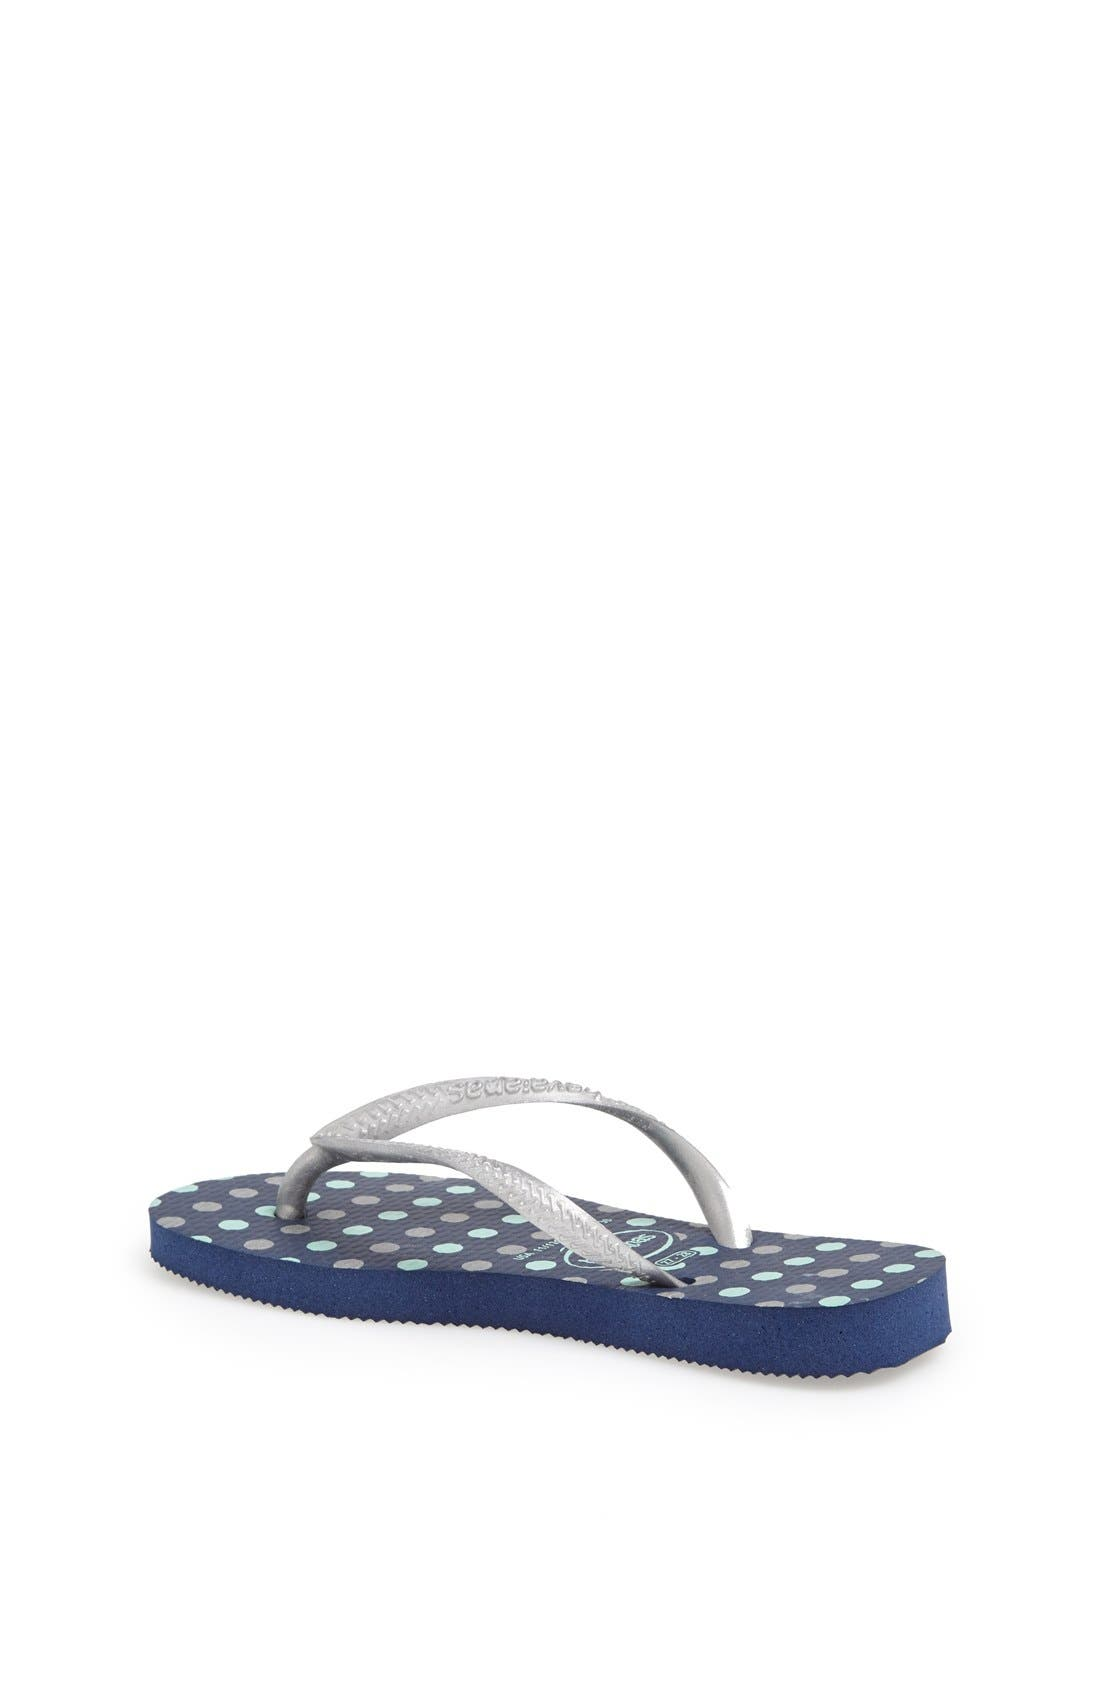 Alternate Image 2  - Havaianas 'Slim Fresh' Flip Flop (Toddler & Little Kid)